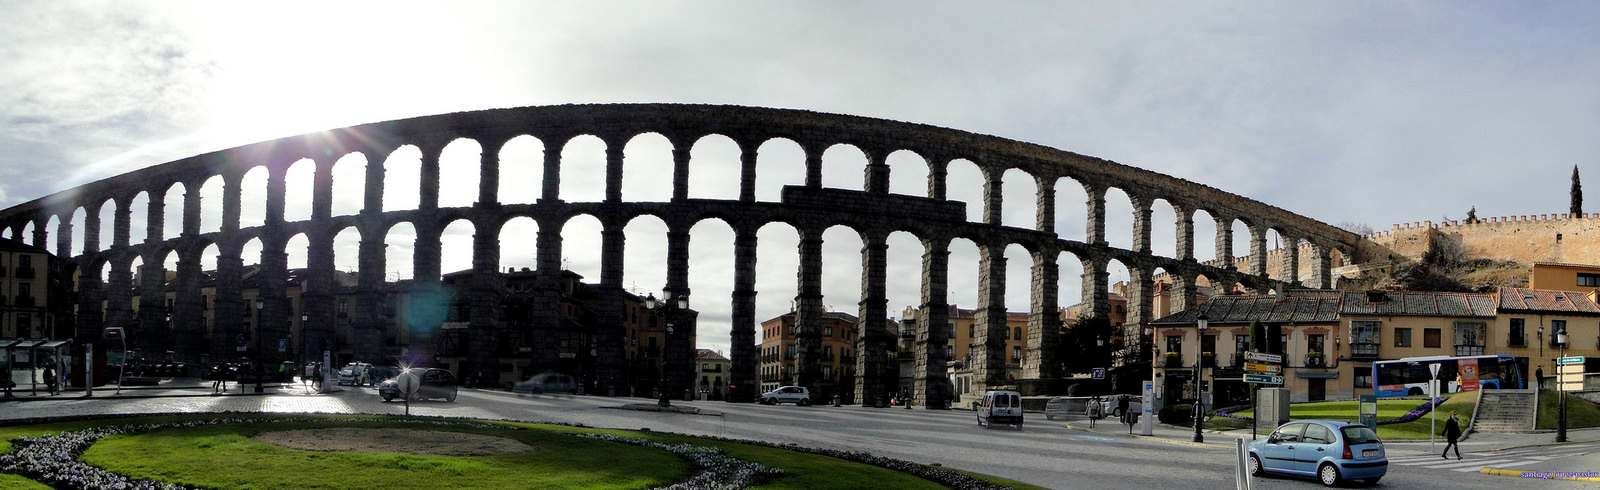 segovia Picturesque Town of Segovia and Monuments